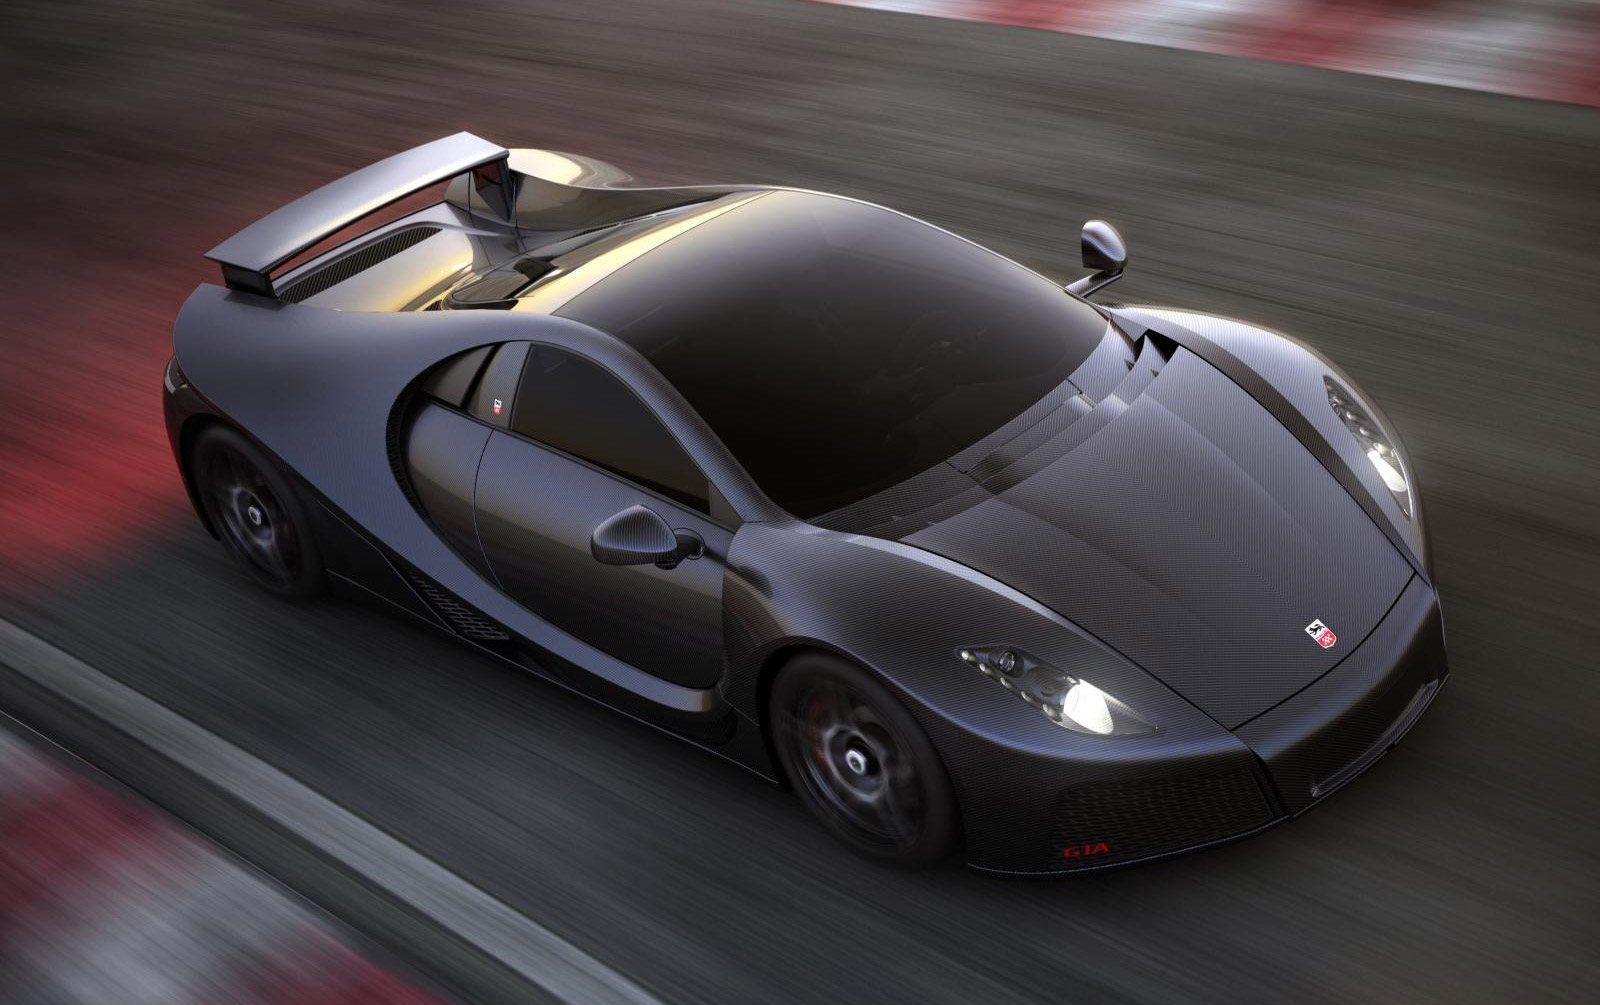 Limited Edition GTA Spano Supercar From Spania GTA Revealed